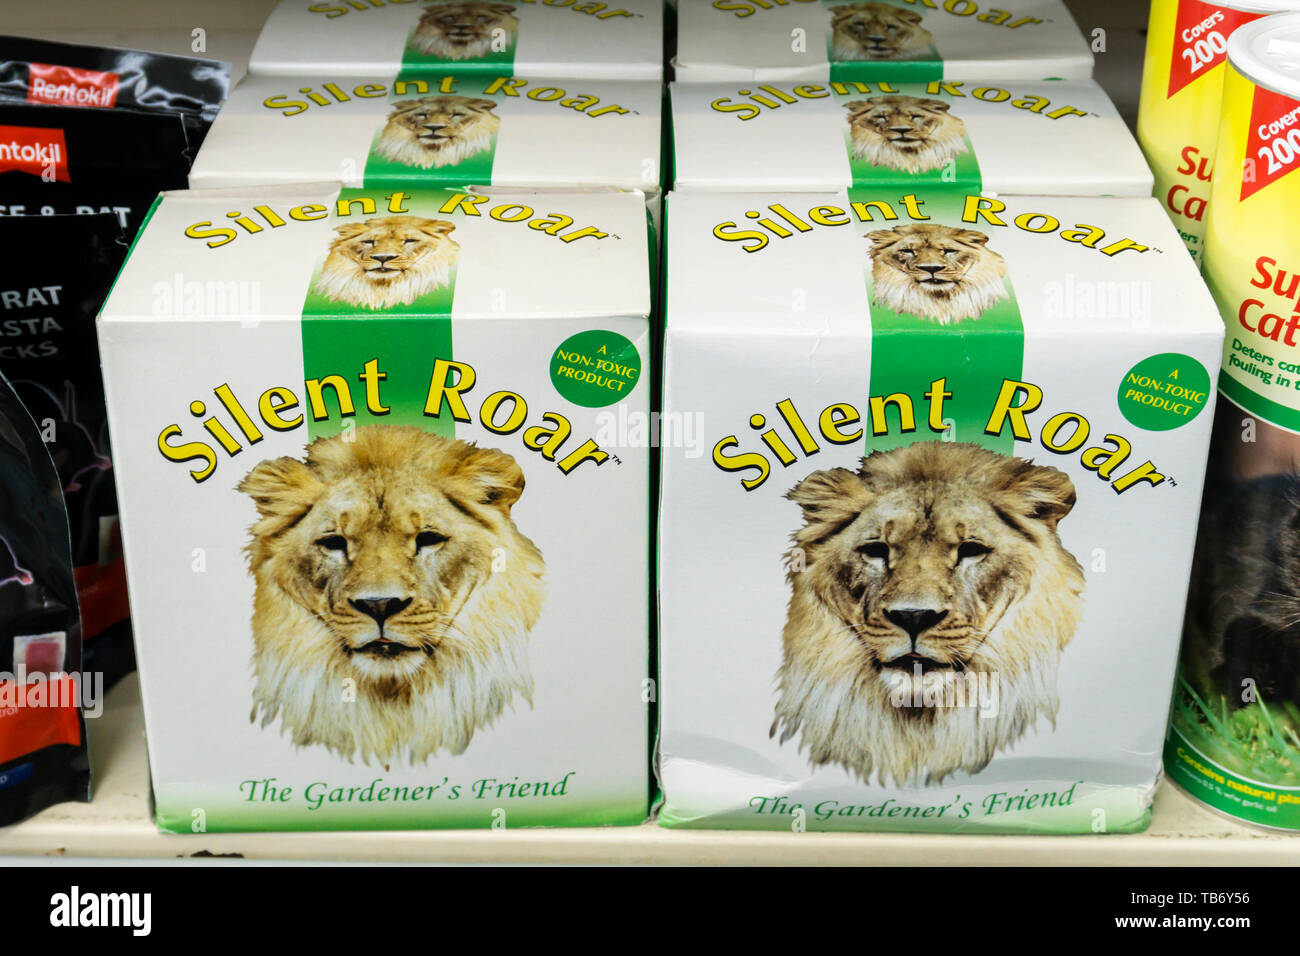 Silent Roar is a nitrogen based fertiliser which has been soaked in lion dung to deter domestic cats. - Stock Image